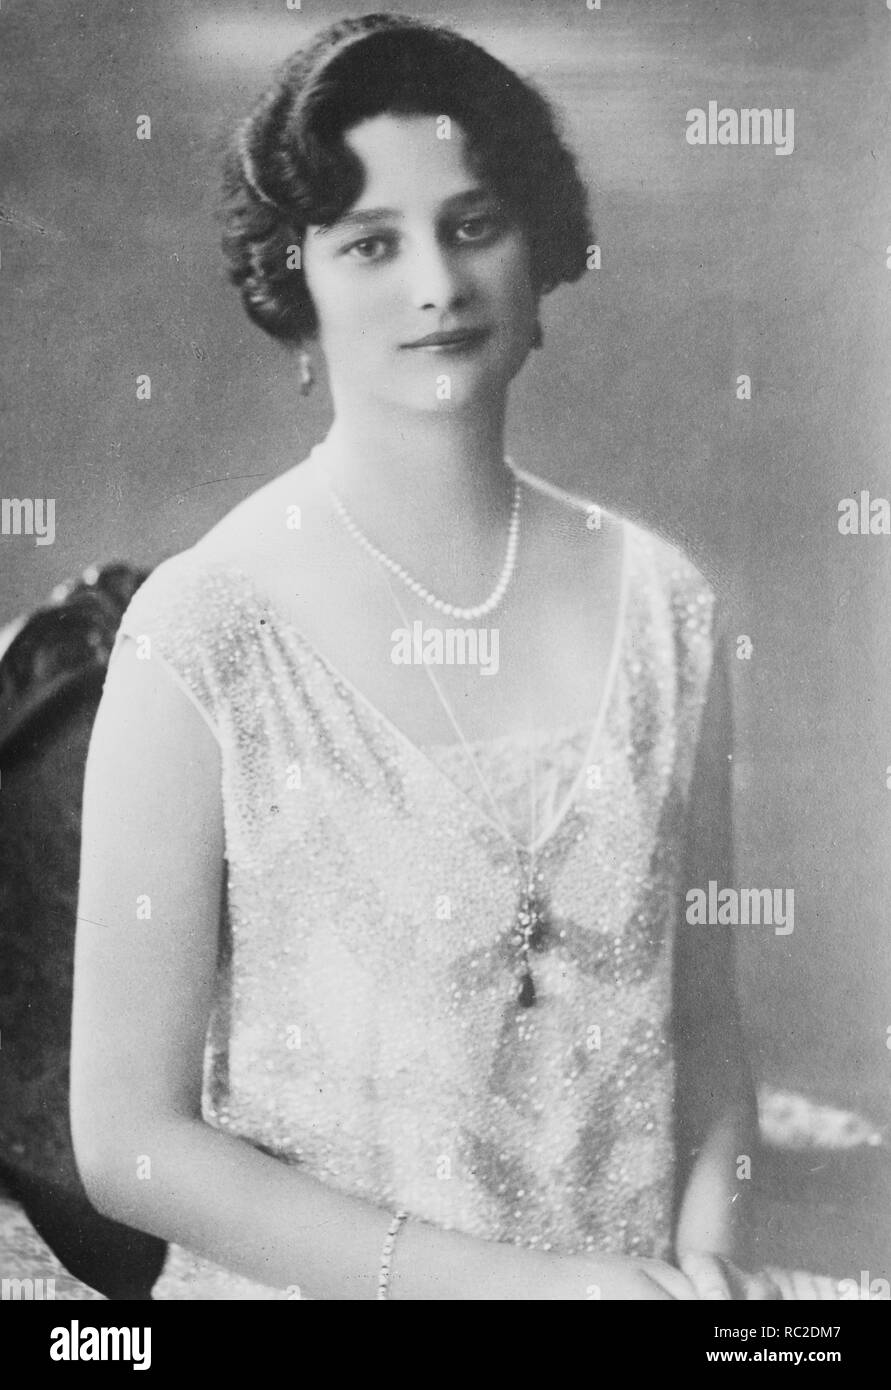 Astrid of Belgium, Astrid Sofia Lovisa Thyra of Sweden, Queen consort of the Belgians (1905-1935) Stock Photo